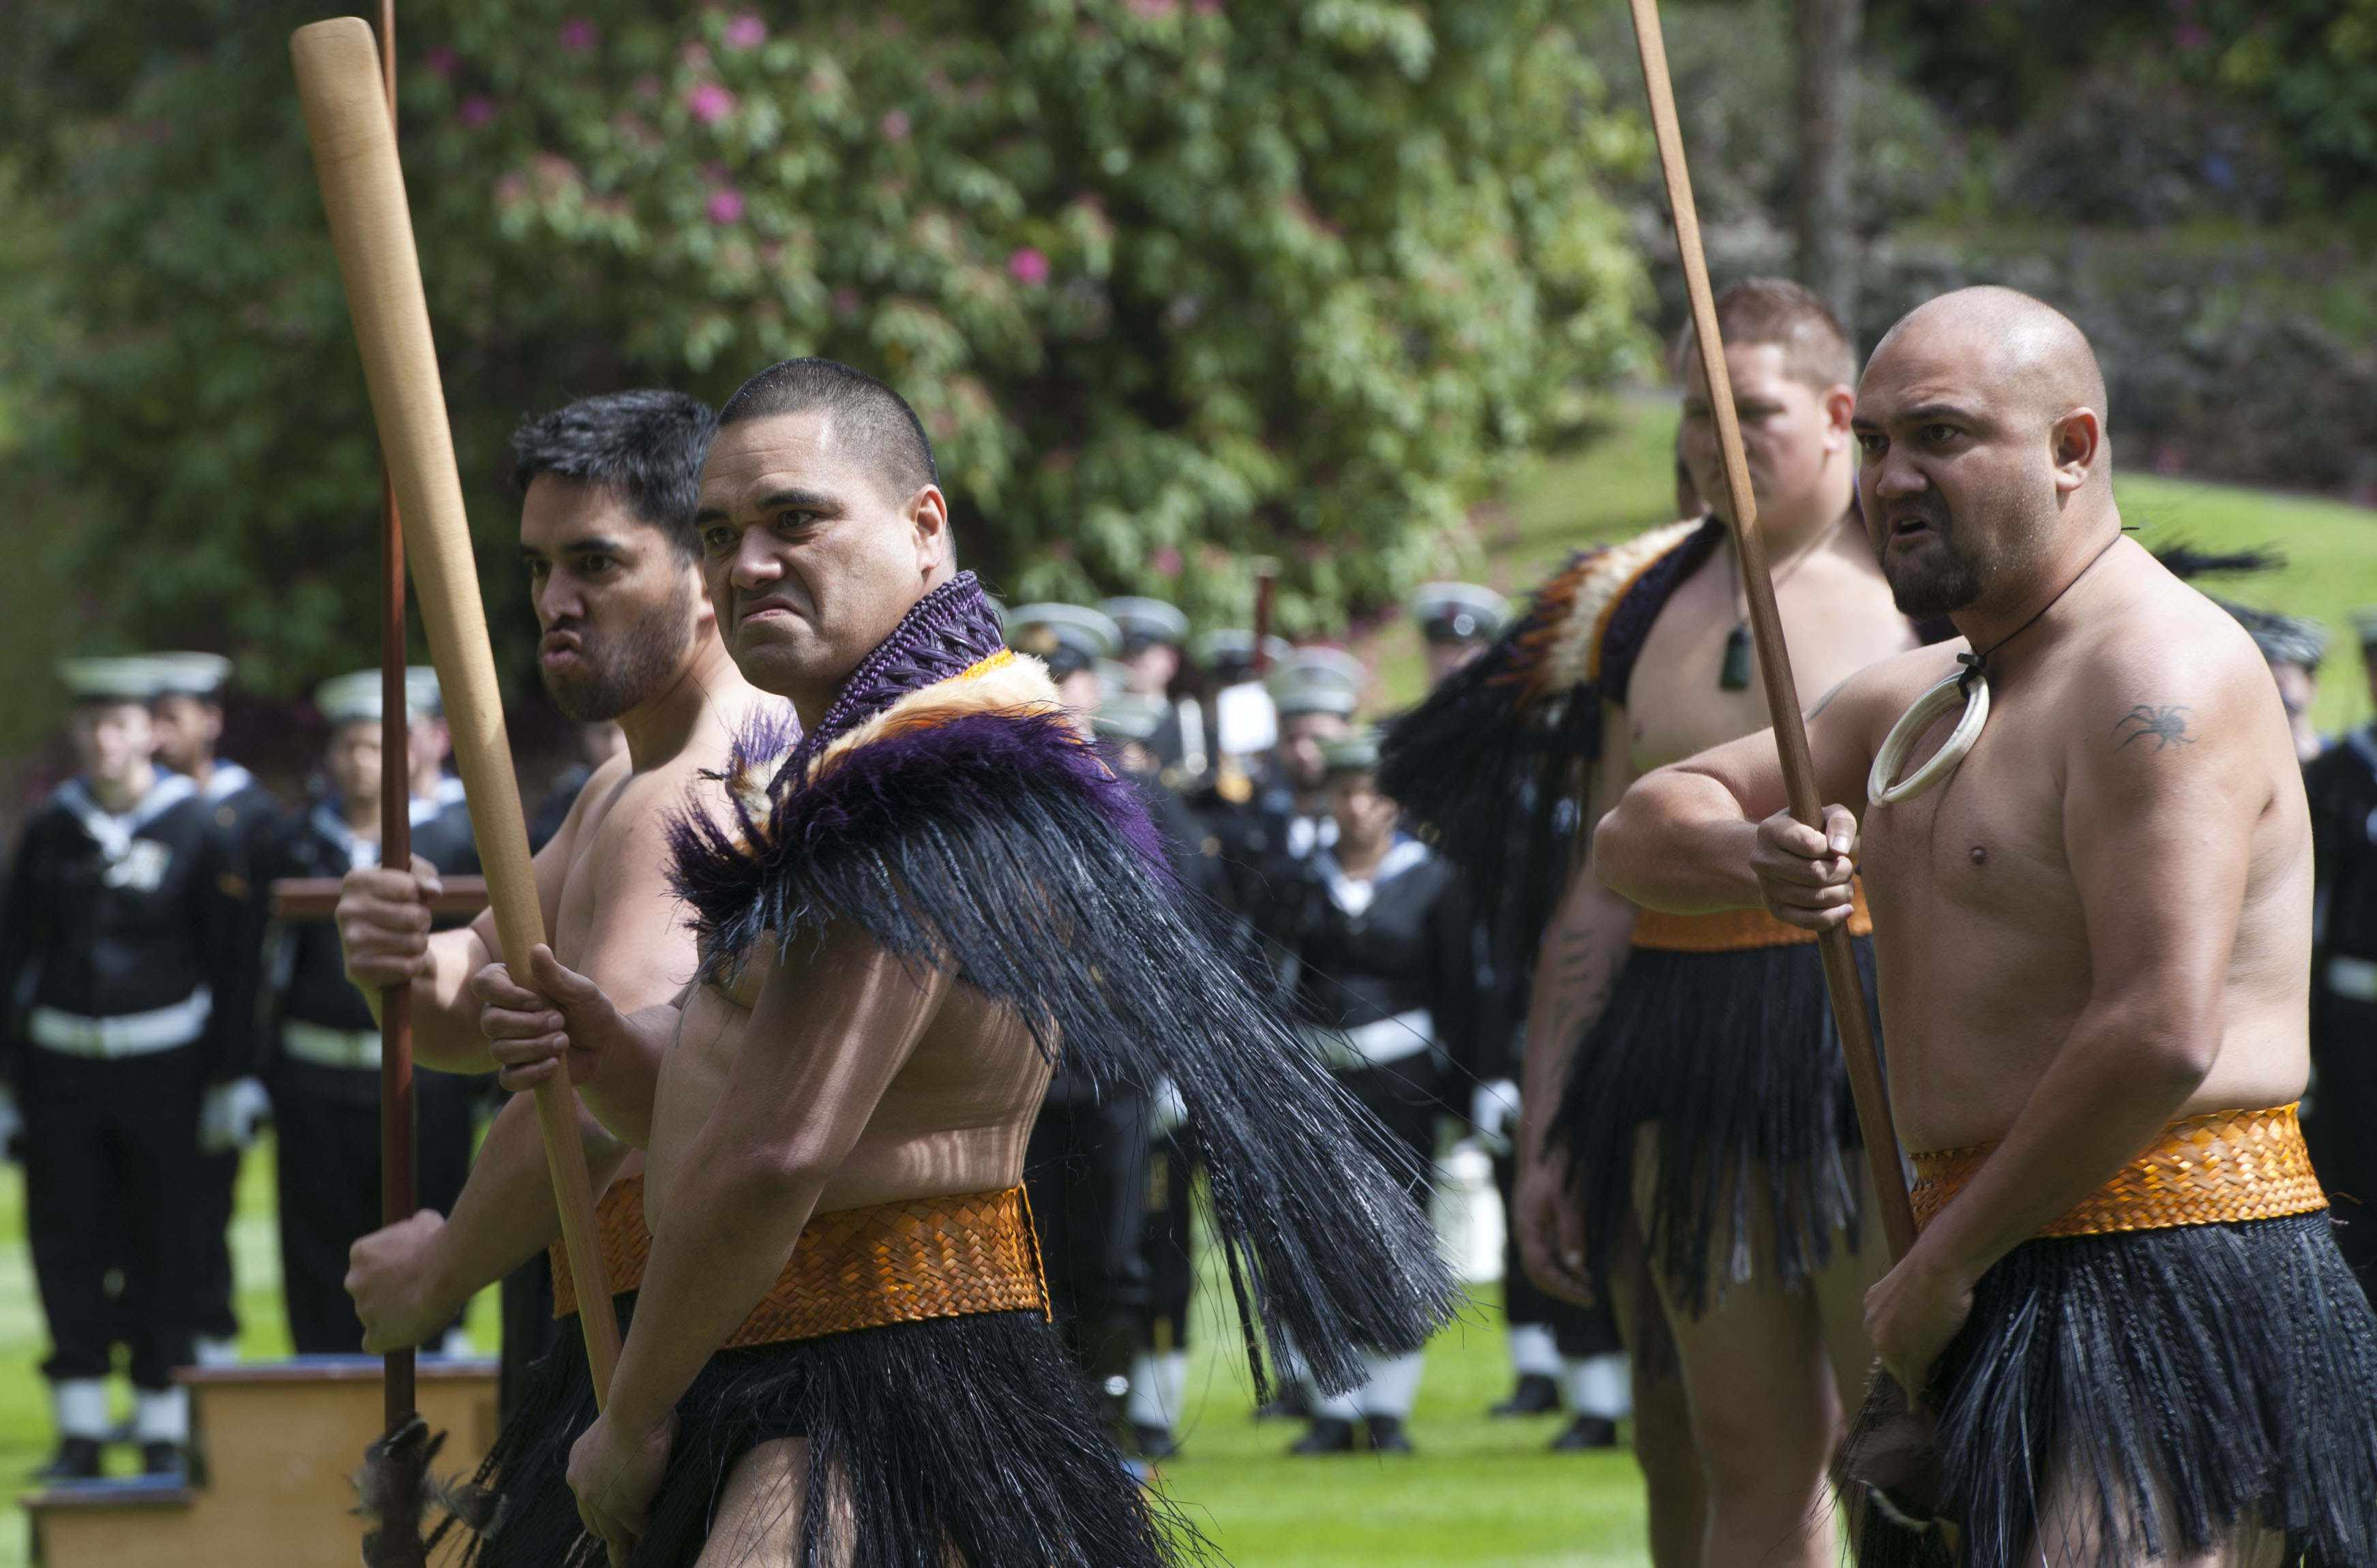 https://commons.wikimedia.org/wiki/File:Haka_performed_during_US_Defense_Secretary%27s_visit_to_New_Zealand_(3).jpg